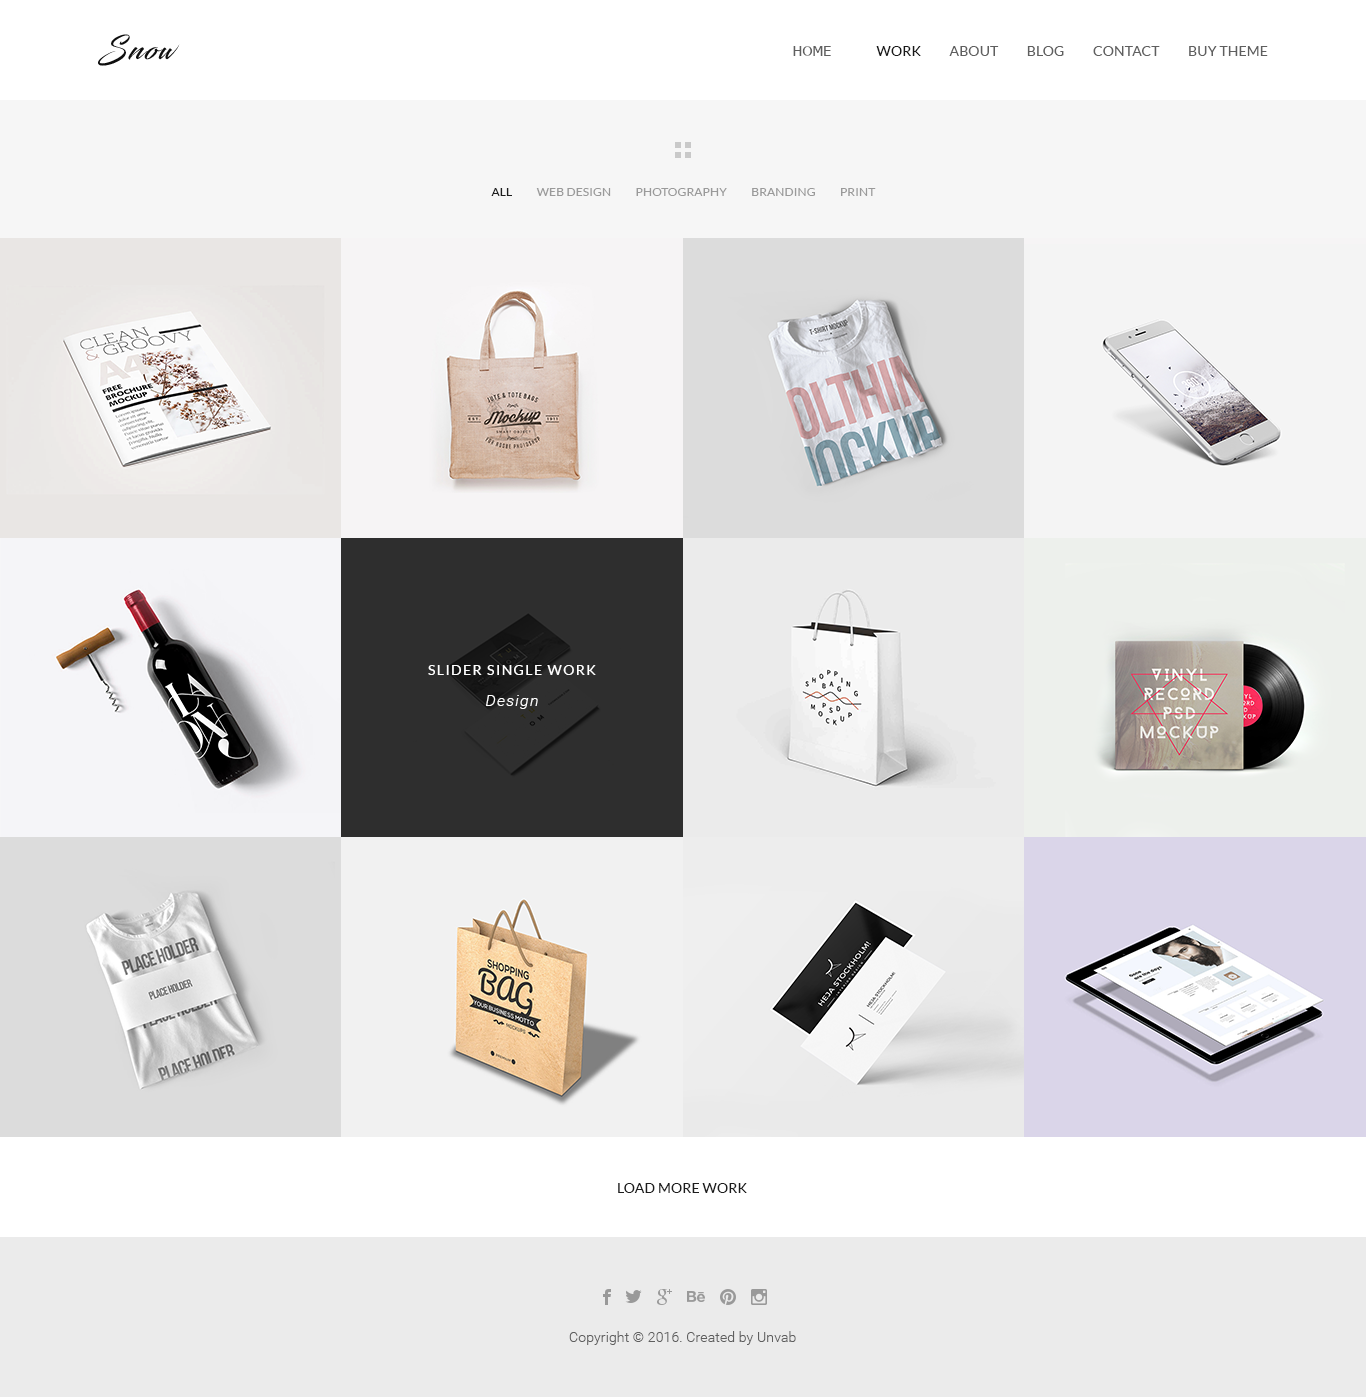 snow minimal clean portfolio psd template by unvab themeforest preview 09 single work png theme preview 10 single work png theme preview 11 single work png theme preview 12 single work png theme preview 13 blog png